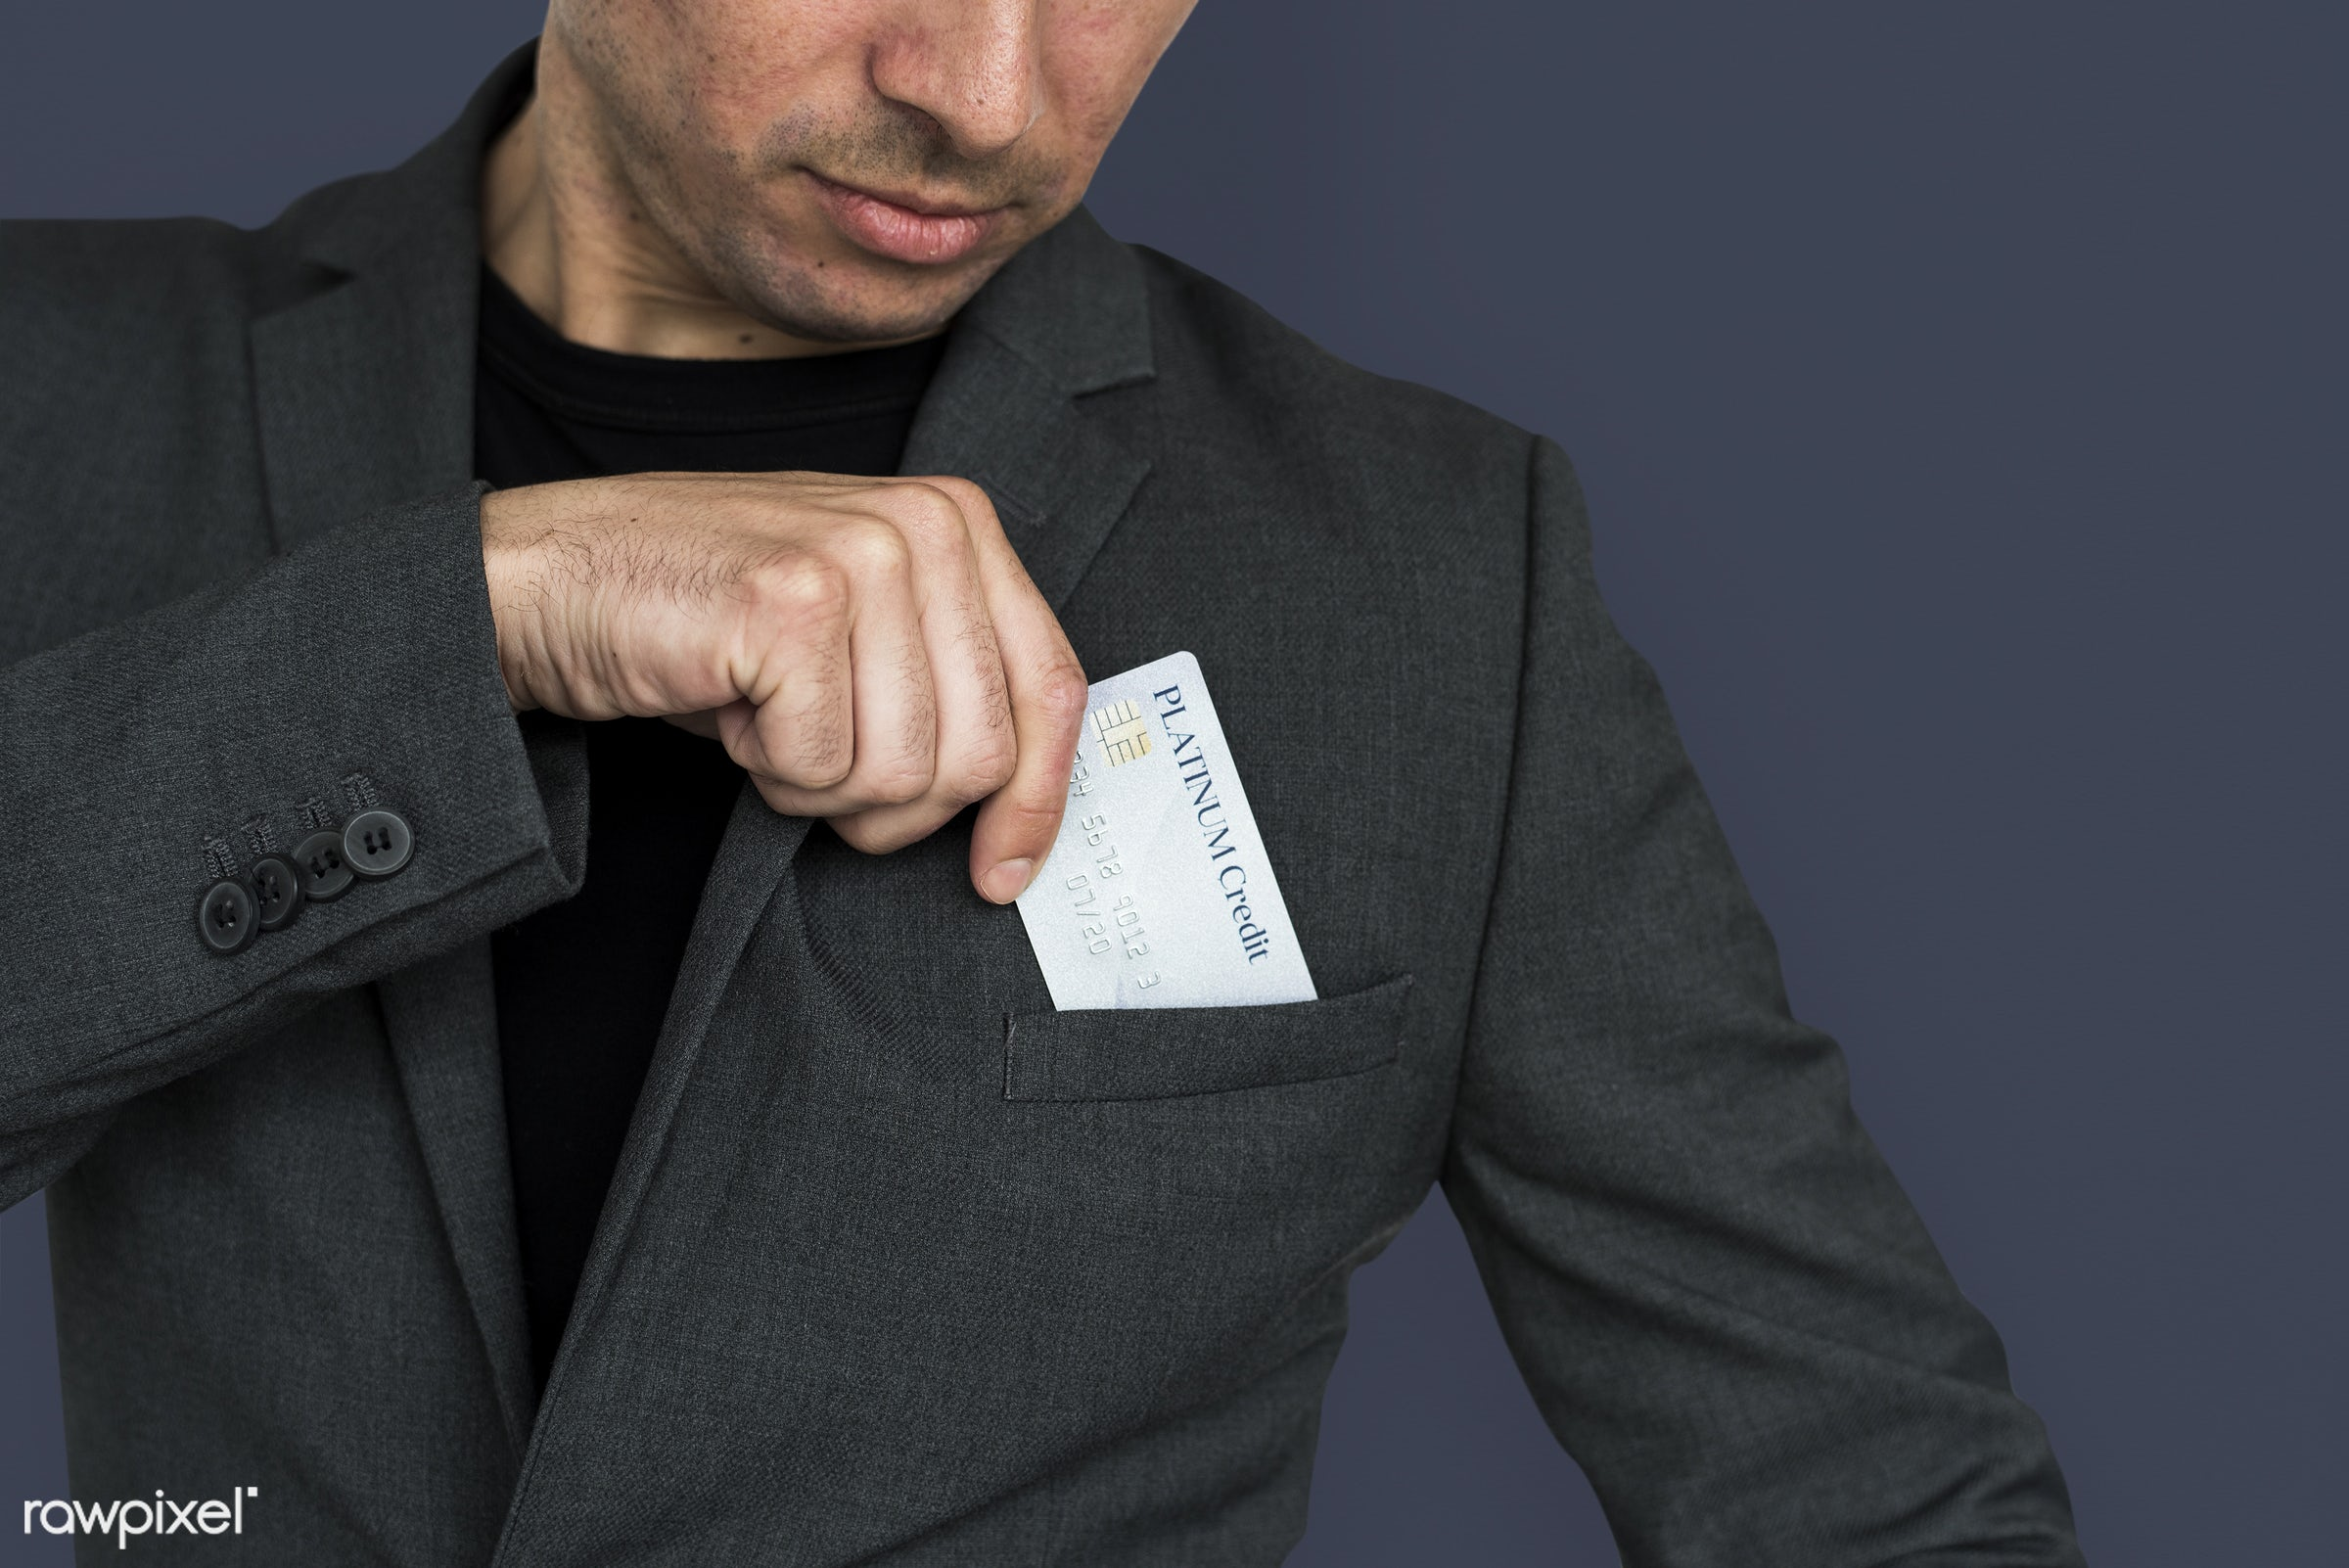 expression, studio, person, bill, business wear, paying bill, people, formal dressing, business, pay, card, paying, credit,...